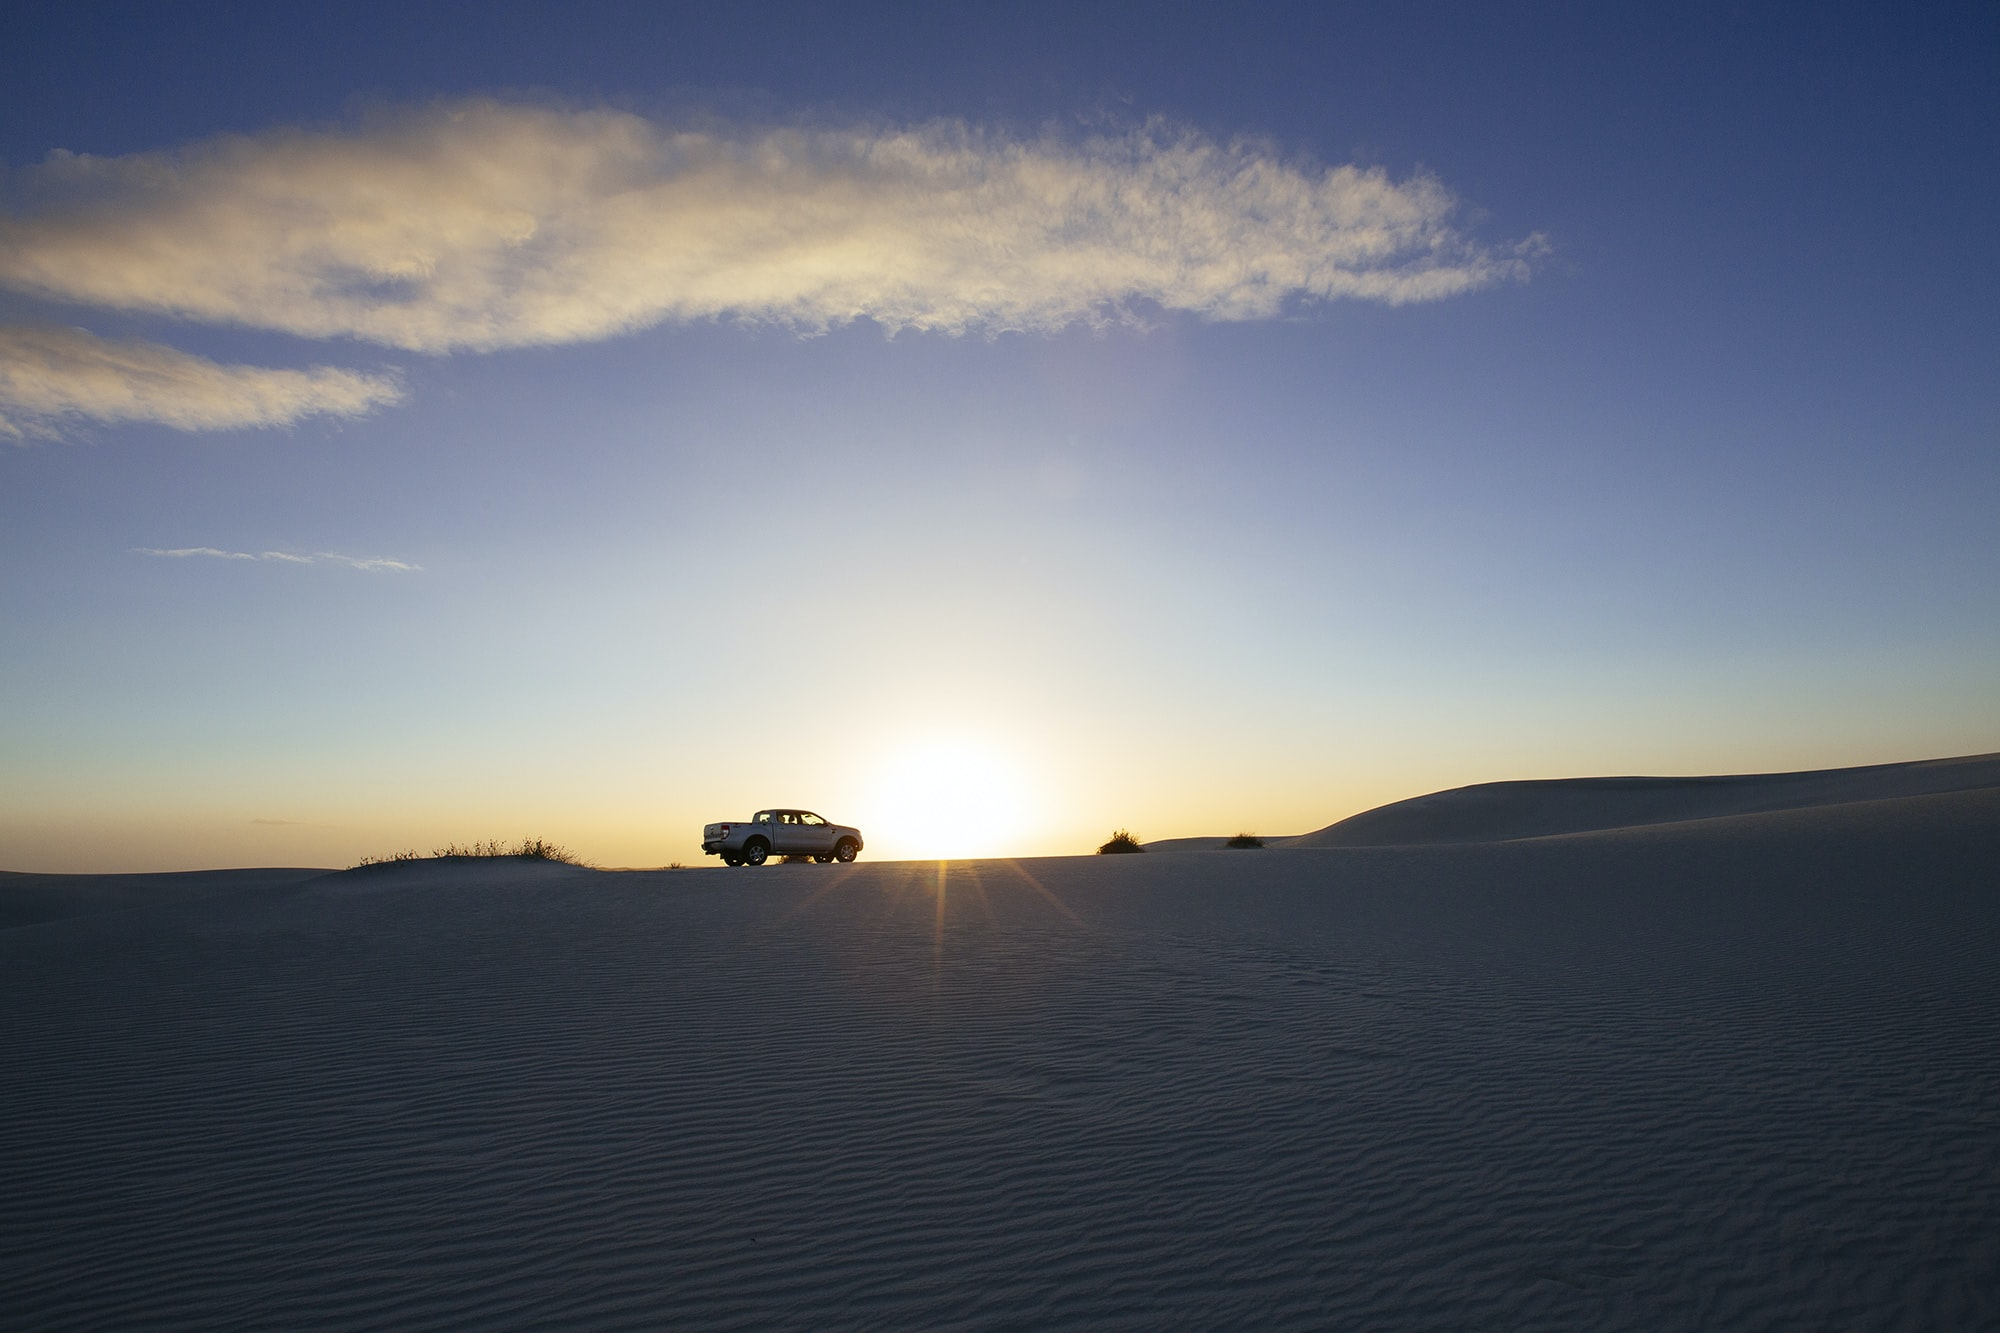 car on desert during sunset